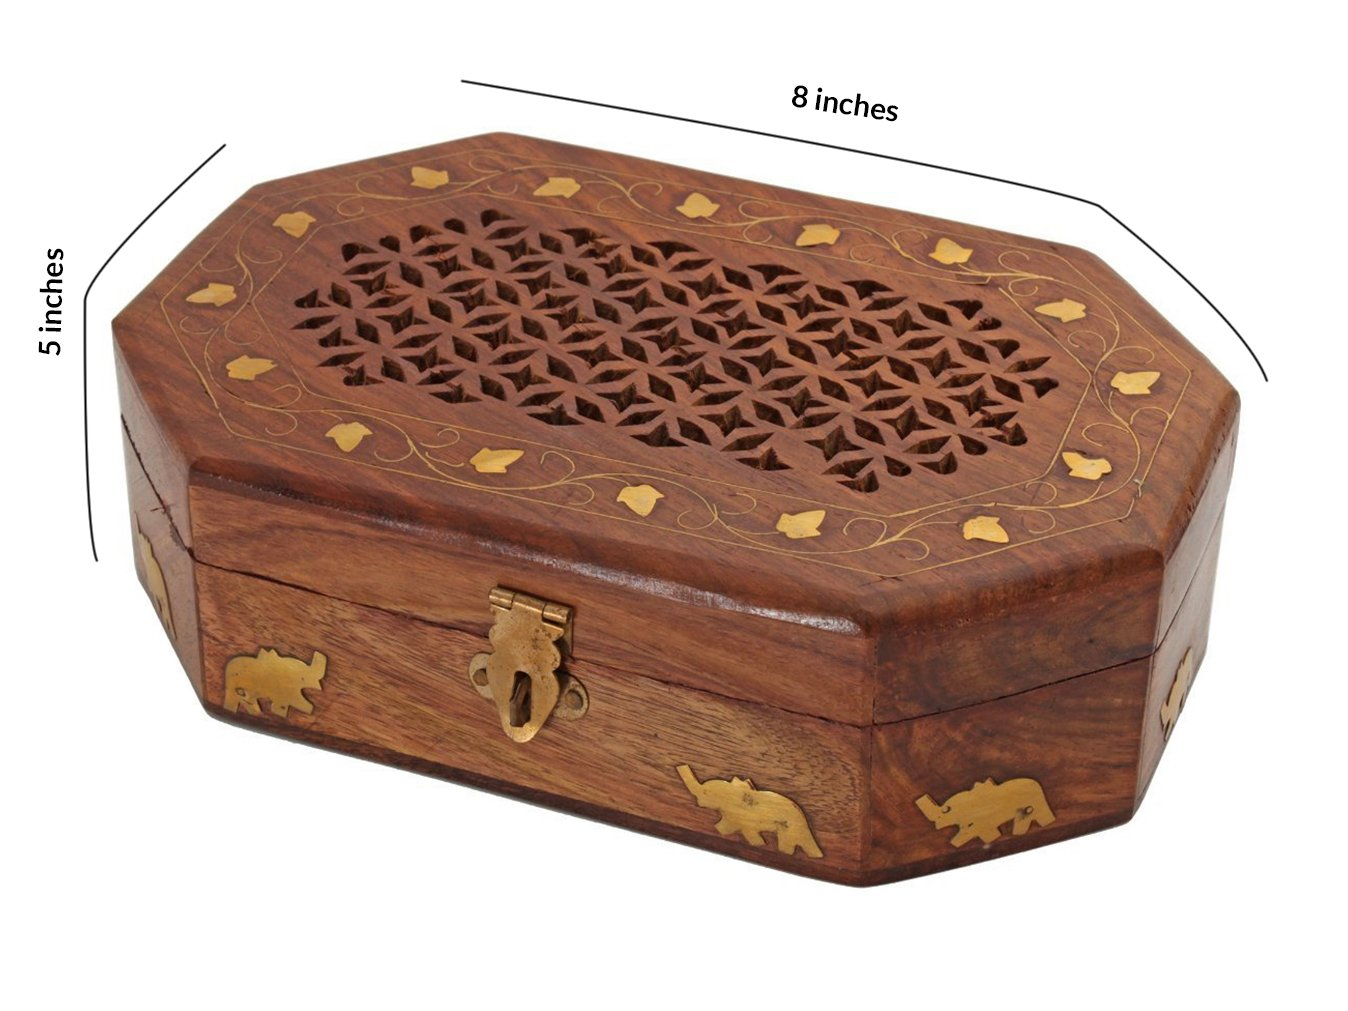 Thanksgiving Box Jewelry Keepsake Trinket Organizer Hand Carved Wooden Organizer with Intricate Carvings by Store Indya by storeindya (Image #2)